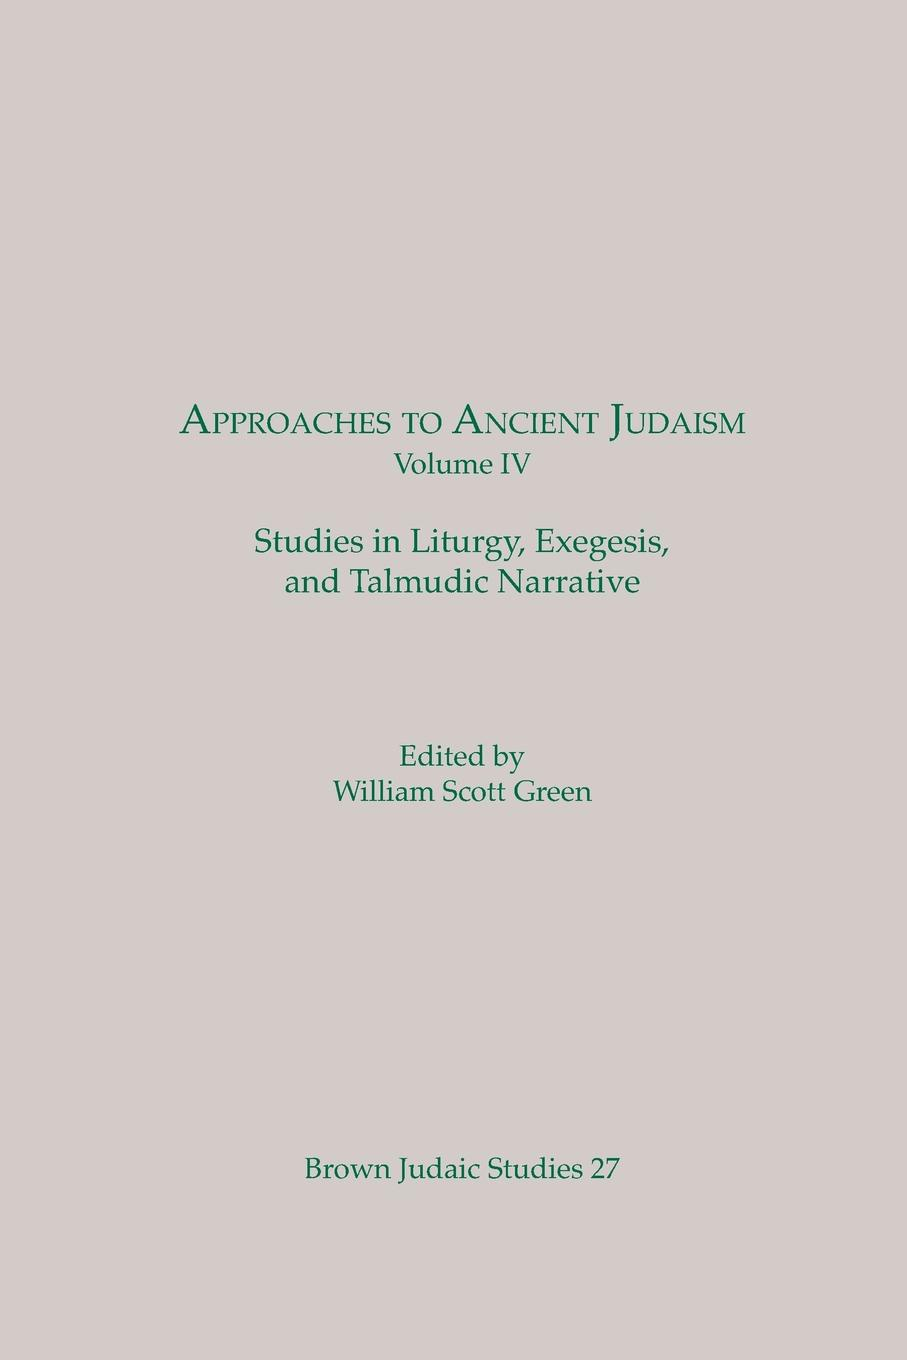 Approaches to Ancient Judaism, Volume IV. Studies in Liturgy, Exegesis, and Talmudic Narrative oxford studies ancient philosophy